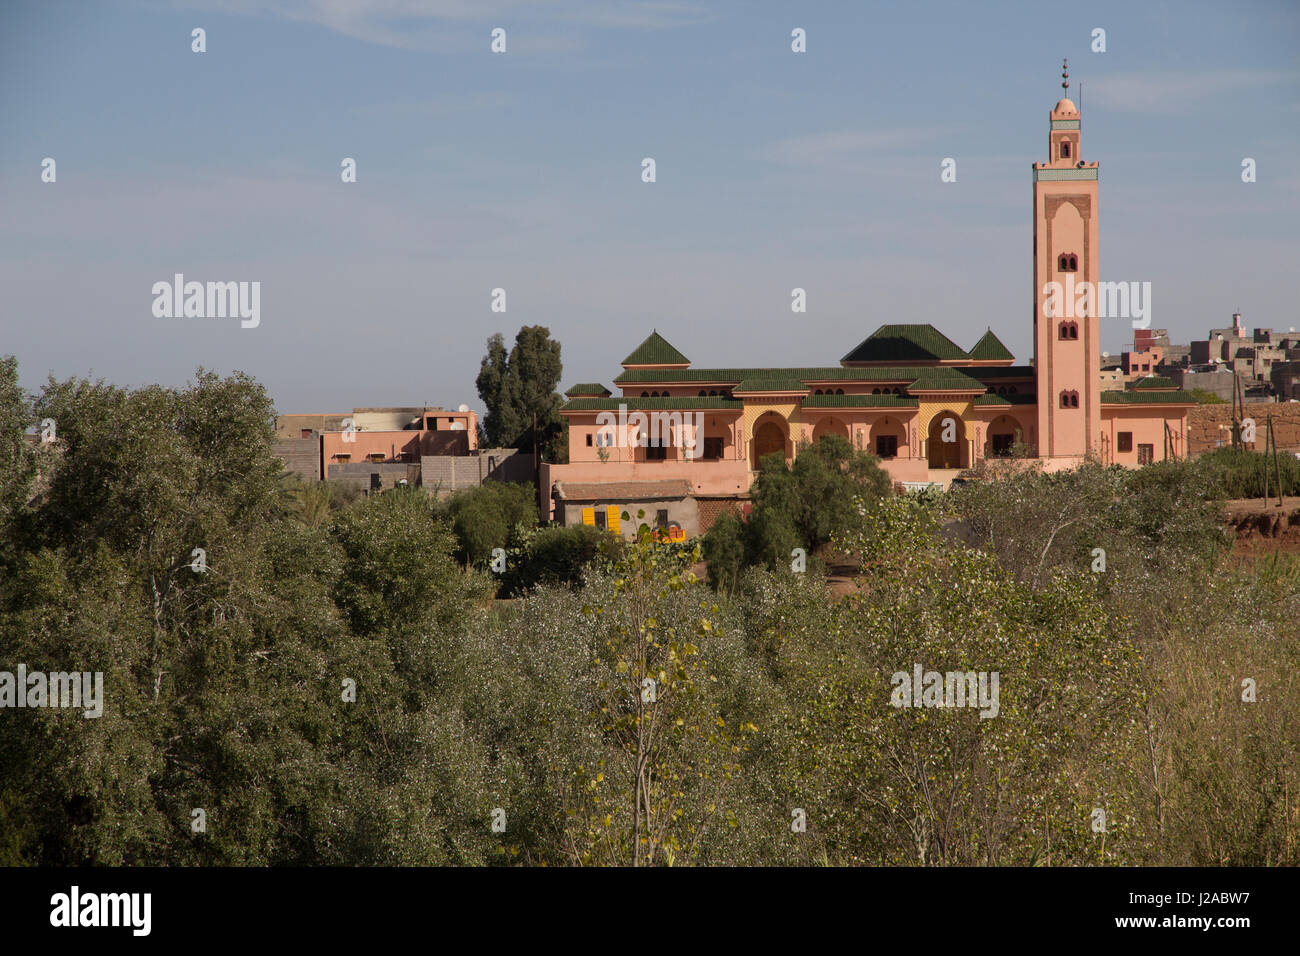 Morocco, Marrakech. Arched doors and windows of a countryside Mosque near Tinmal. - Stock Image